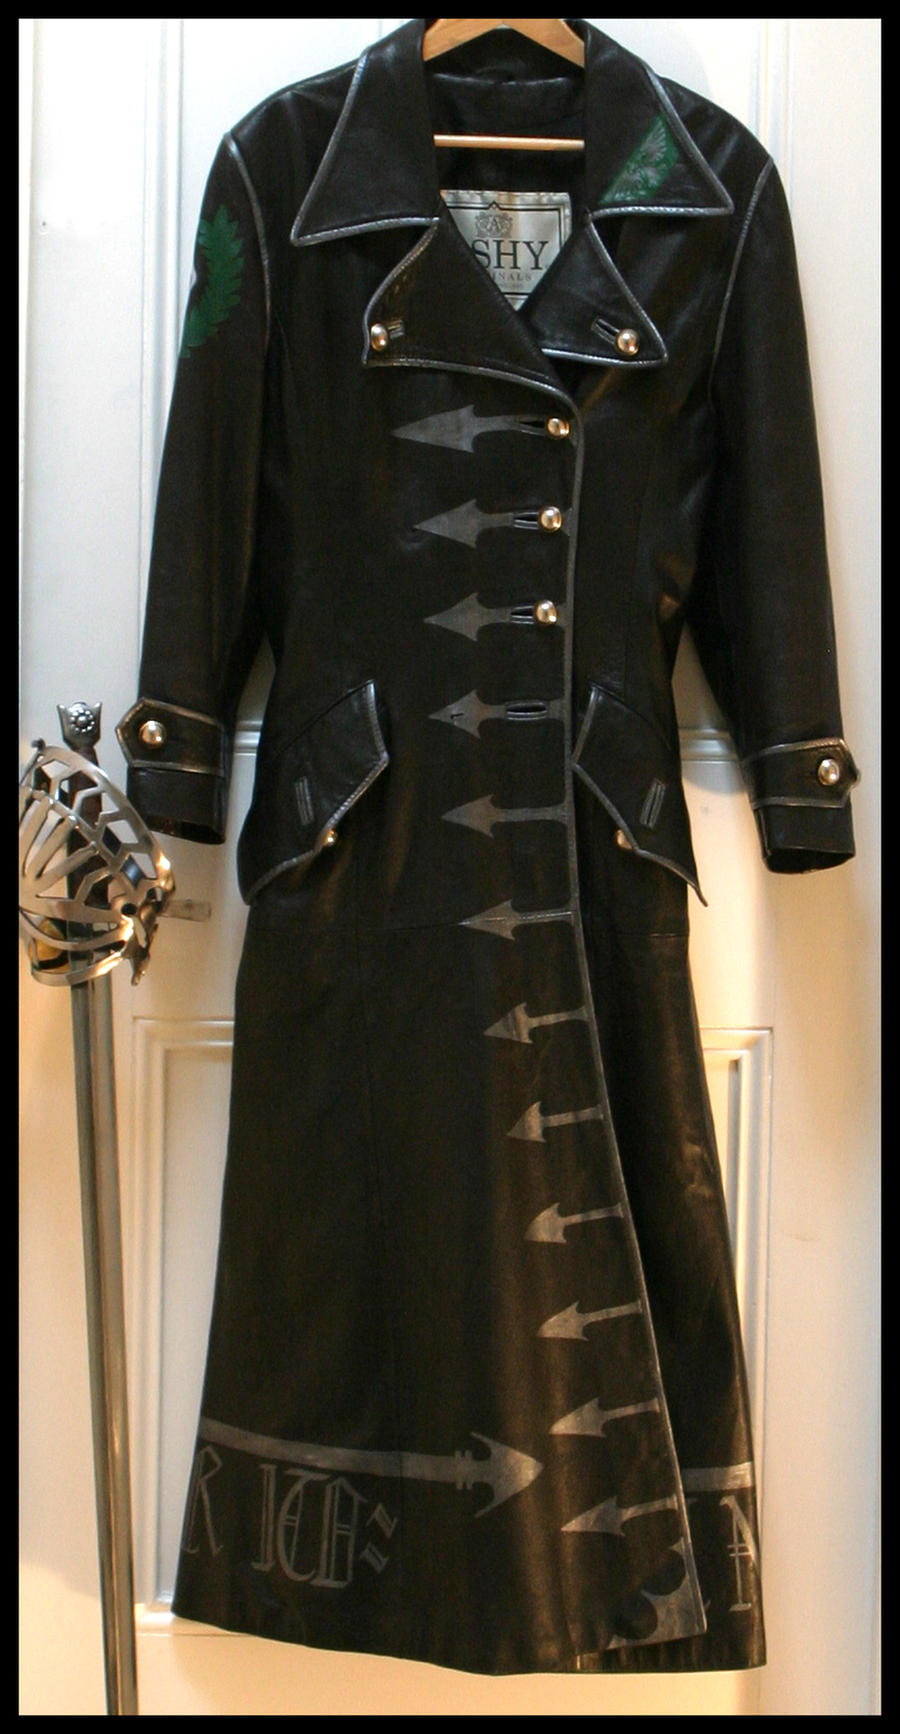 Warhammer 40K officer's coat by wraithwitch